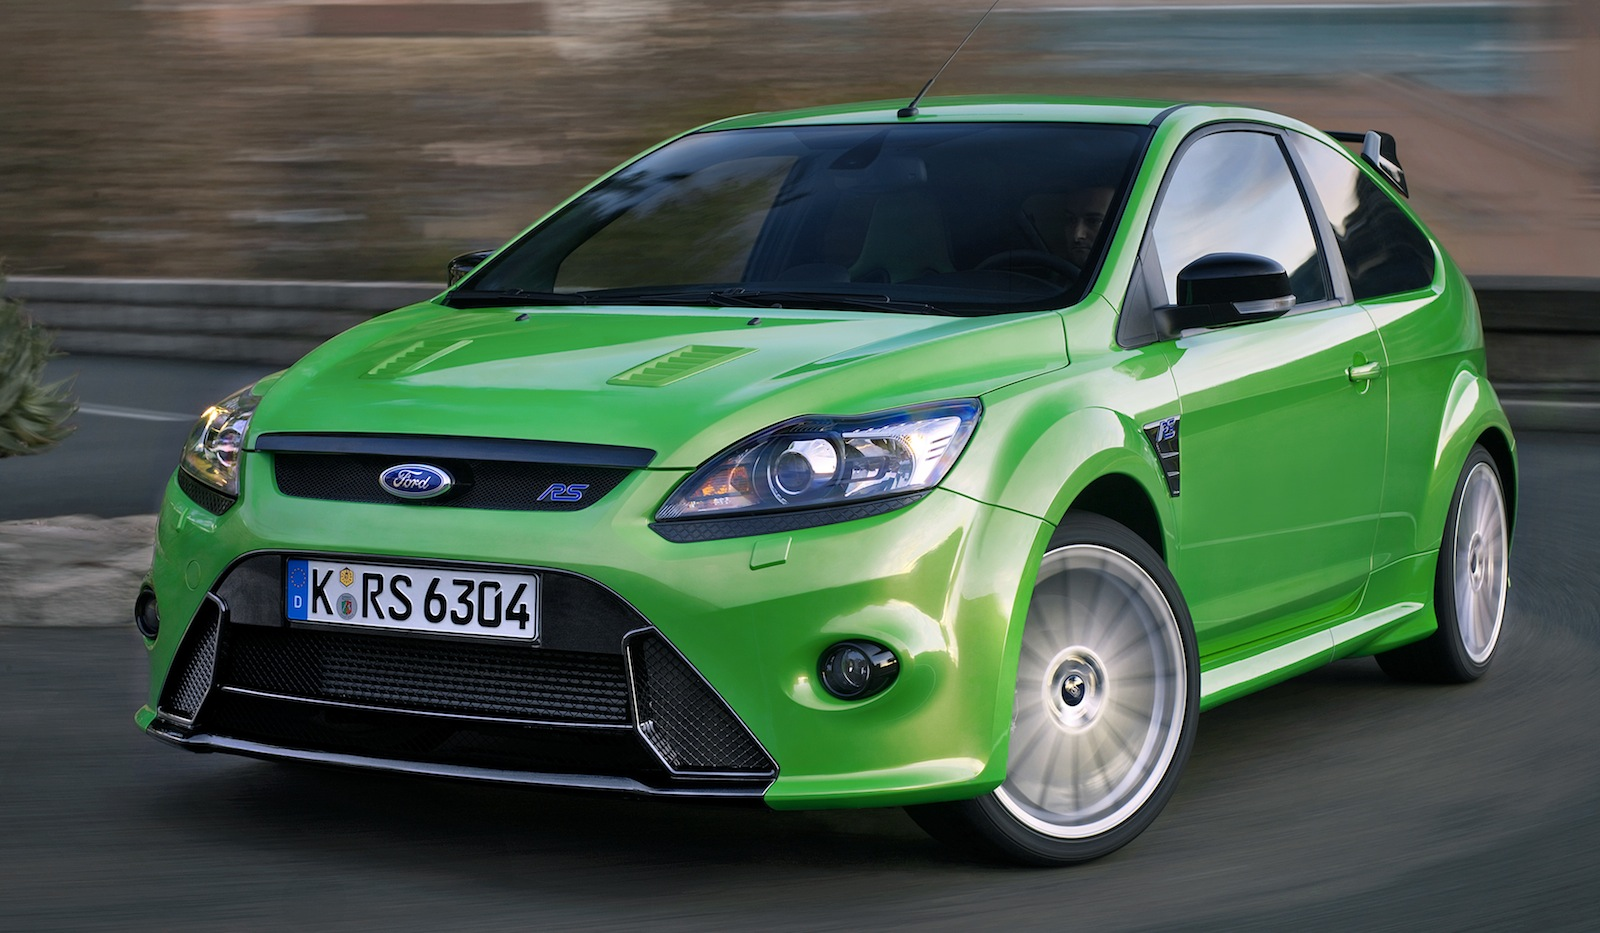 ford focus rs hot hatch to get 250kw turbo four cylinder report photos 1 of 3. Black Bedroom Furniture Sets. Home Design Ideas